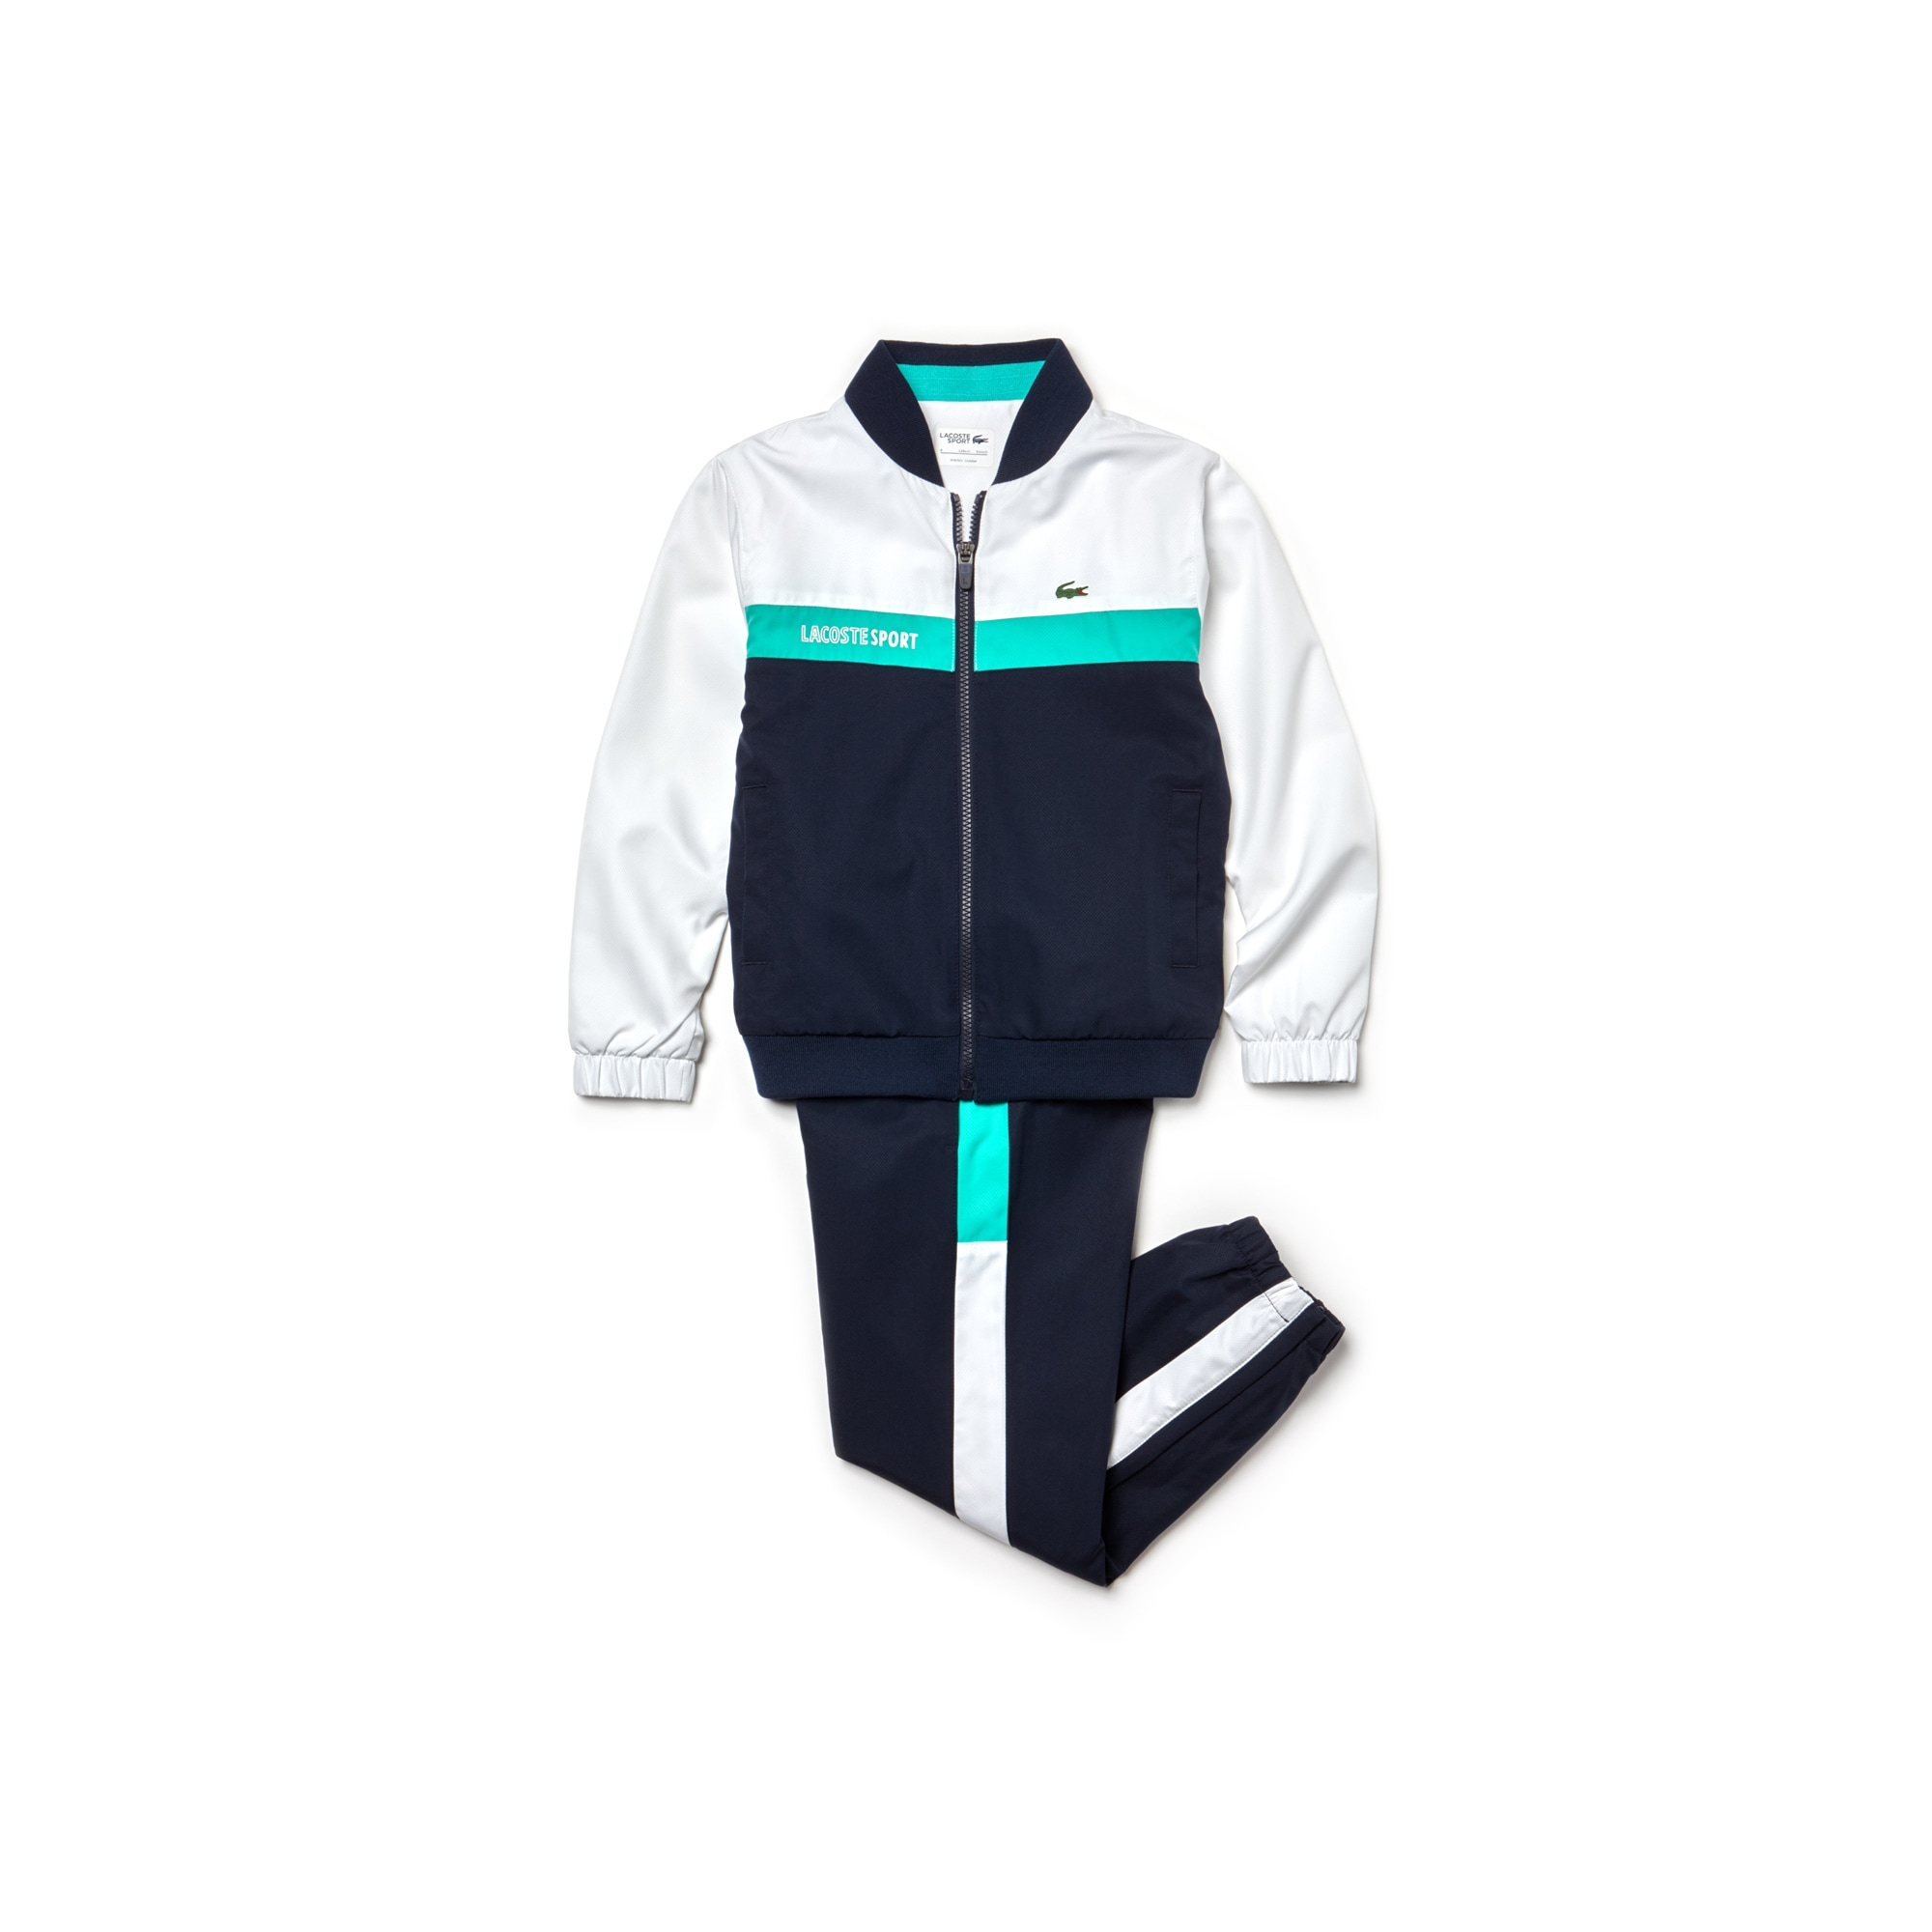 Ensemble de survêtement Garçon Tennis Lacoste SPORT en taffetas color block